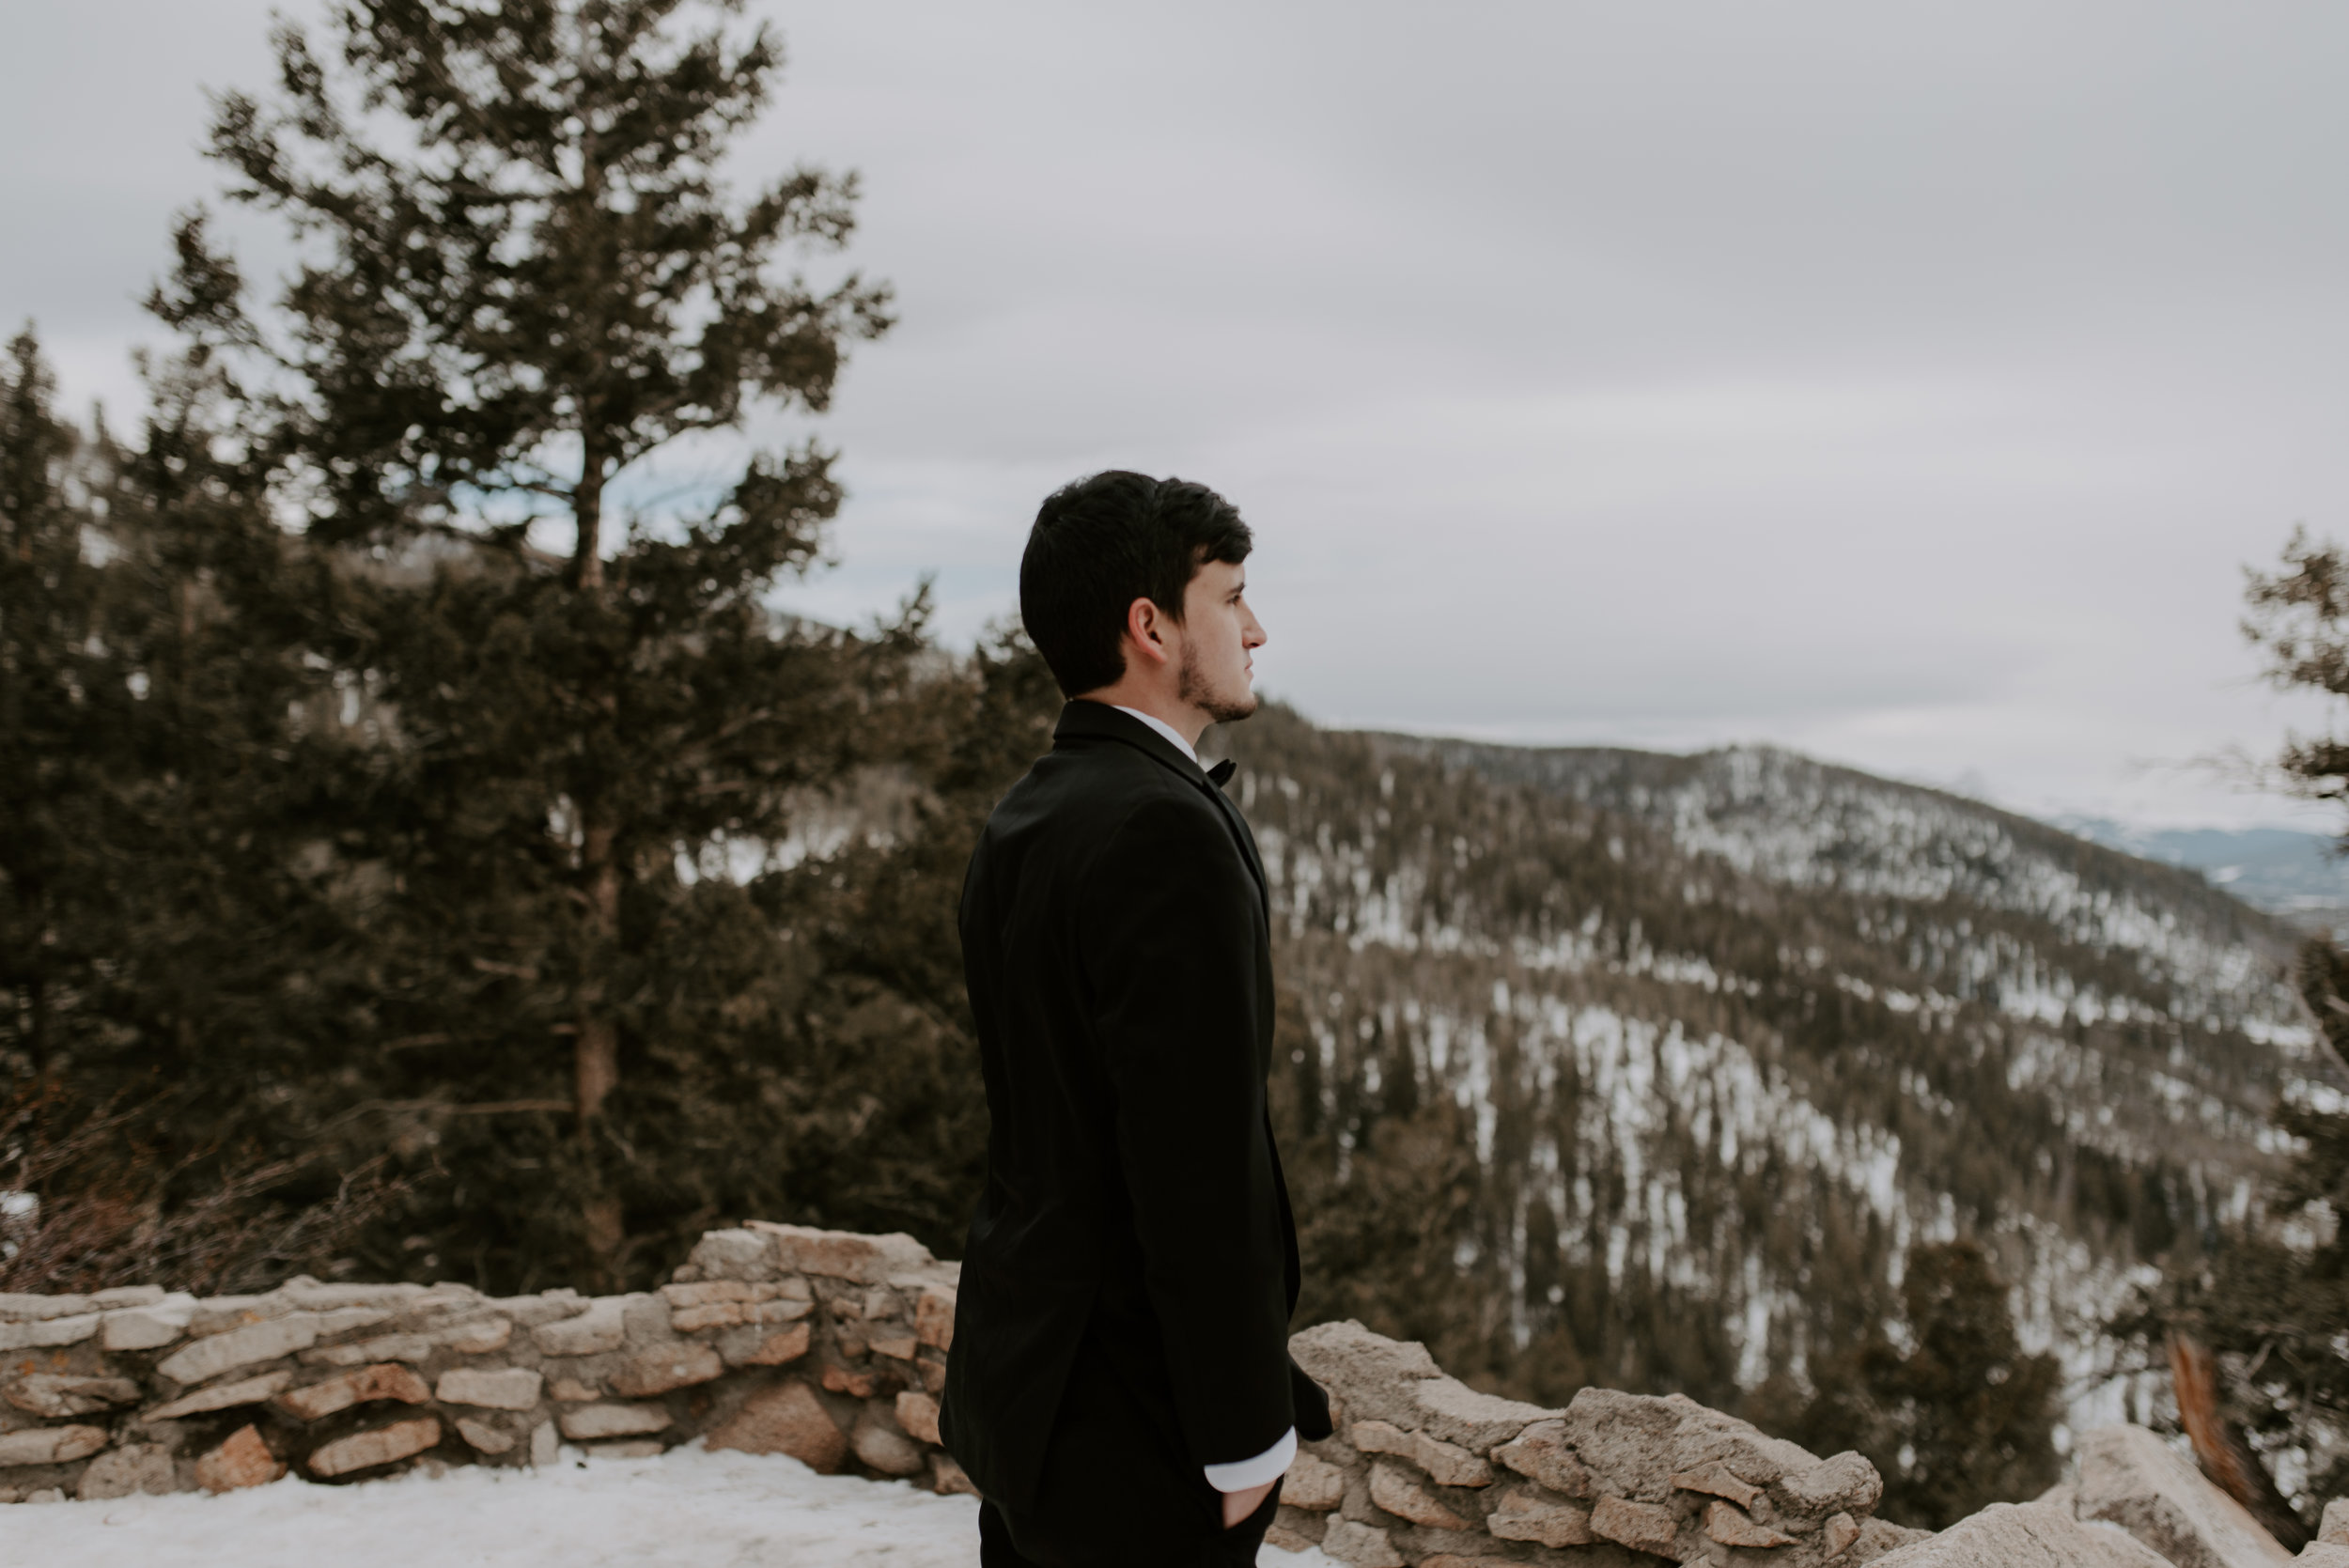 First look at Sapphire Point. Colorado elopement photographer. Sapphire Point winter elopement.